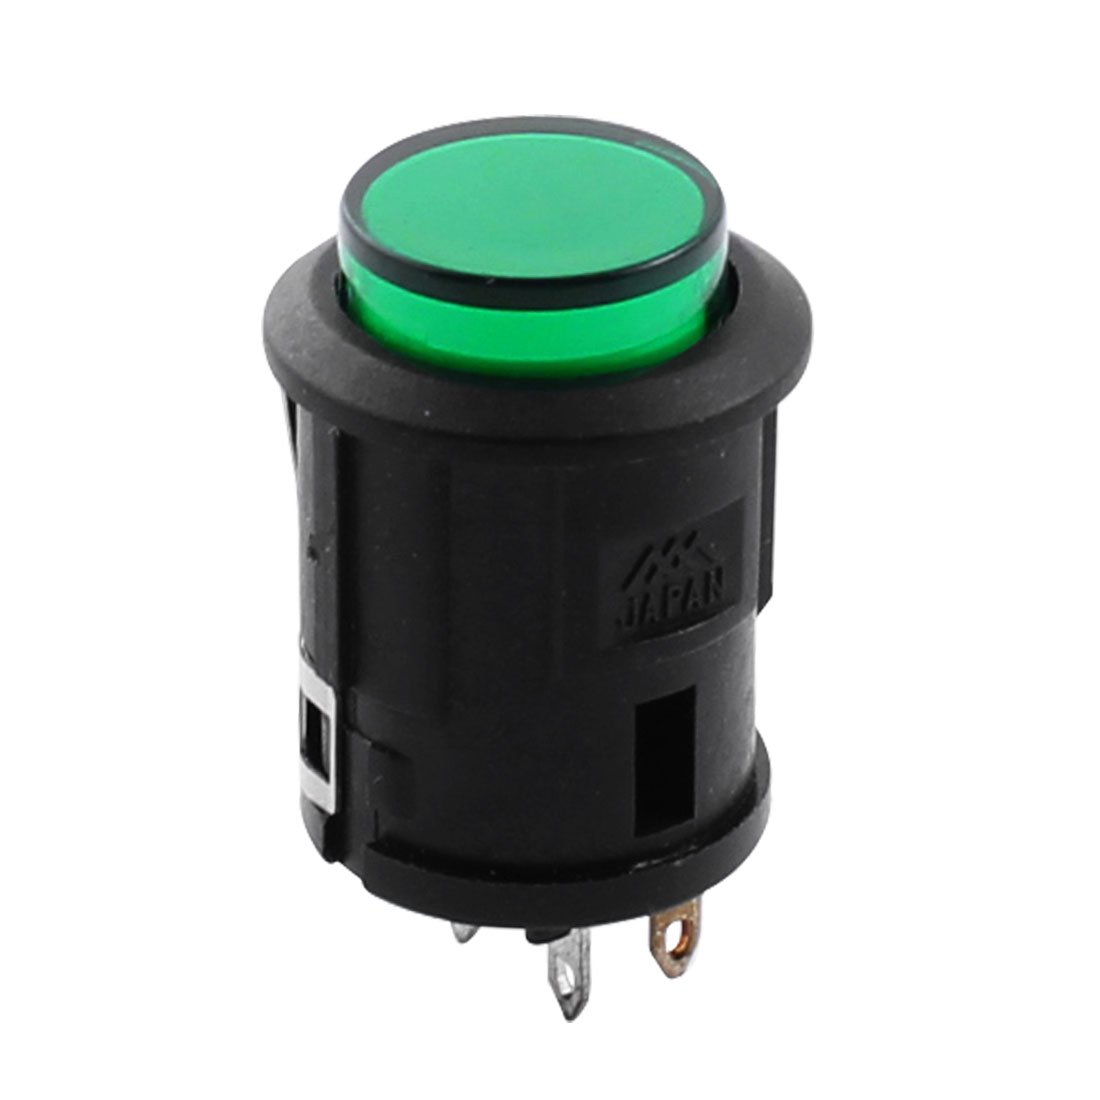 DC 12V Green Indicator Light Lamp 4Pin 16mm Mounting Snap In Black SPST Momentary Push Button Switch